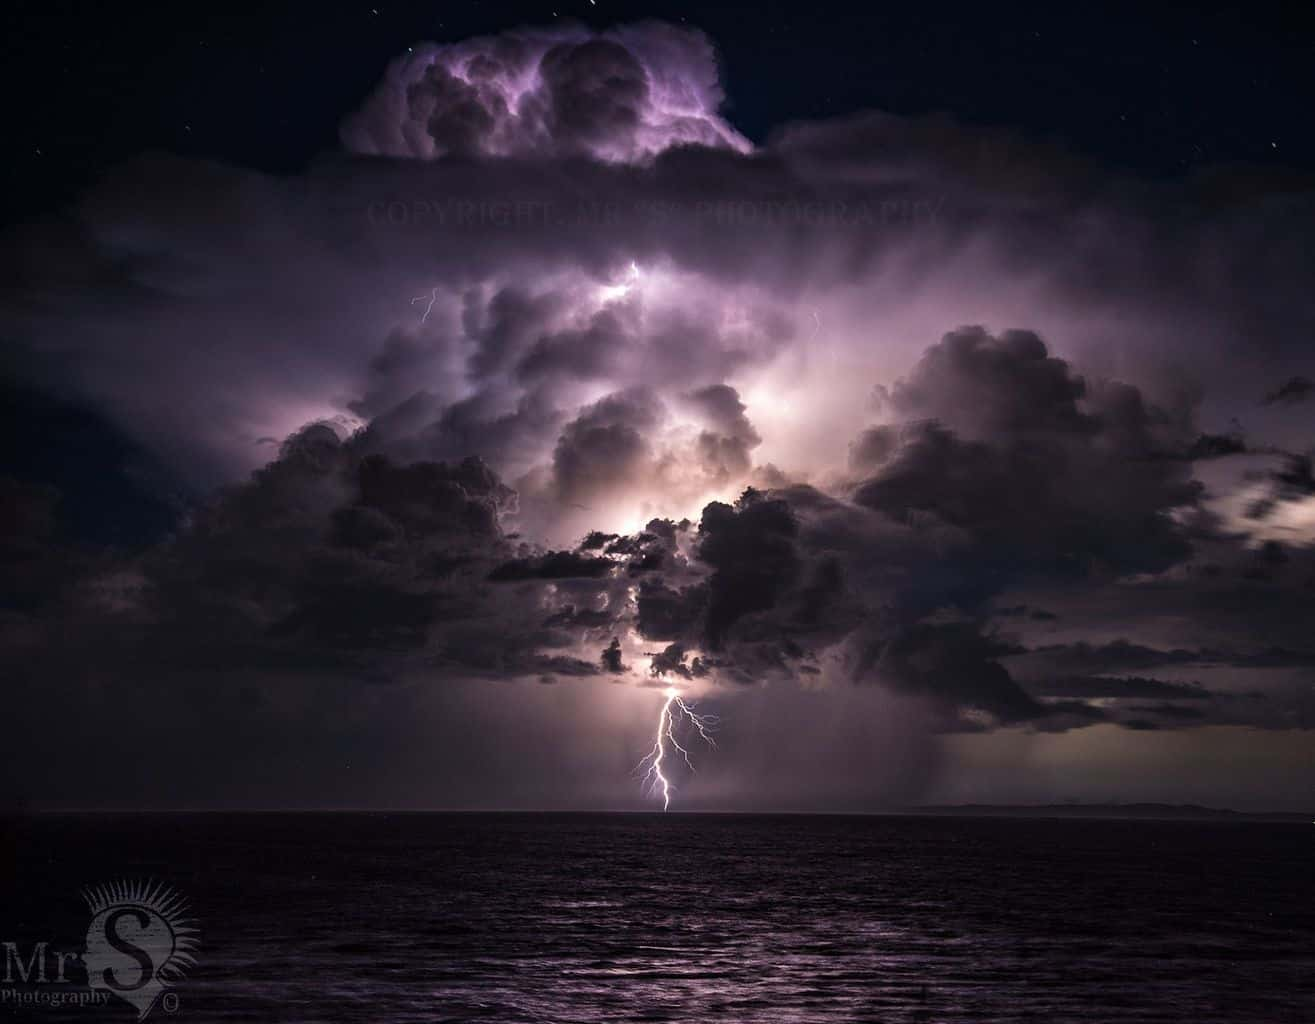 !! A made dash to Shorncliffe !! A shot from one of the 20,000 plus an hour lightning strikes last Monday evening offshore in Qld Australia. I was at Shorncliffe and besides the winds the light show was simply amazing.